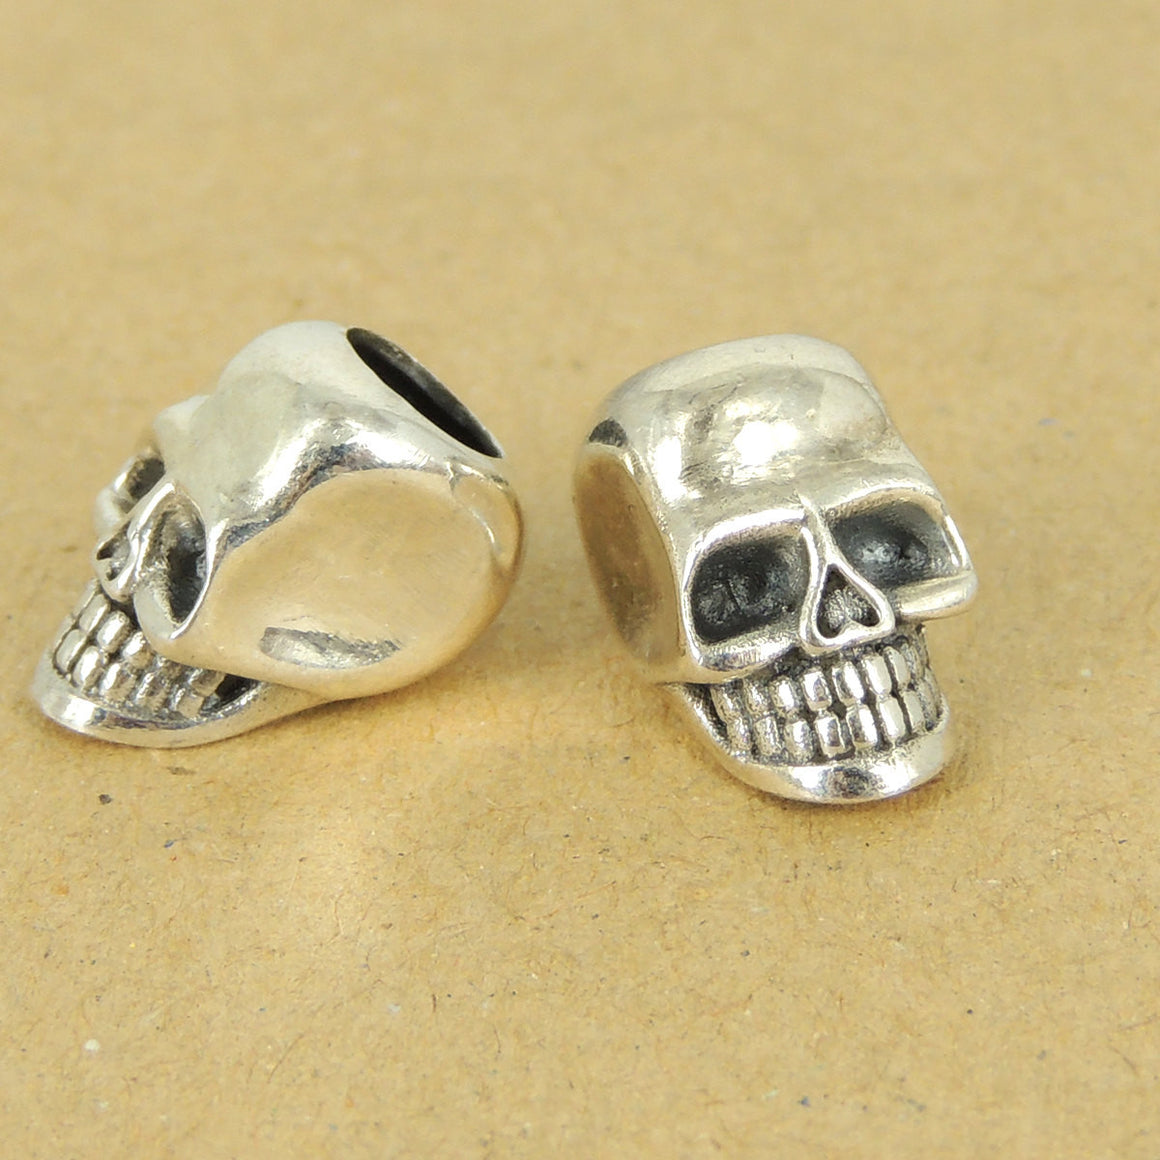 1 PC Smiling Skull Protection Beads - S925 Sterling Silver - Wholesale by Gem & Silver WSP421X1